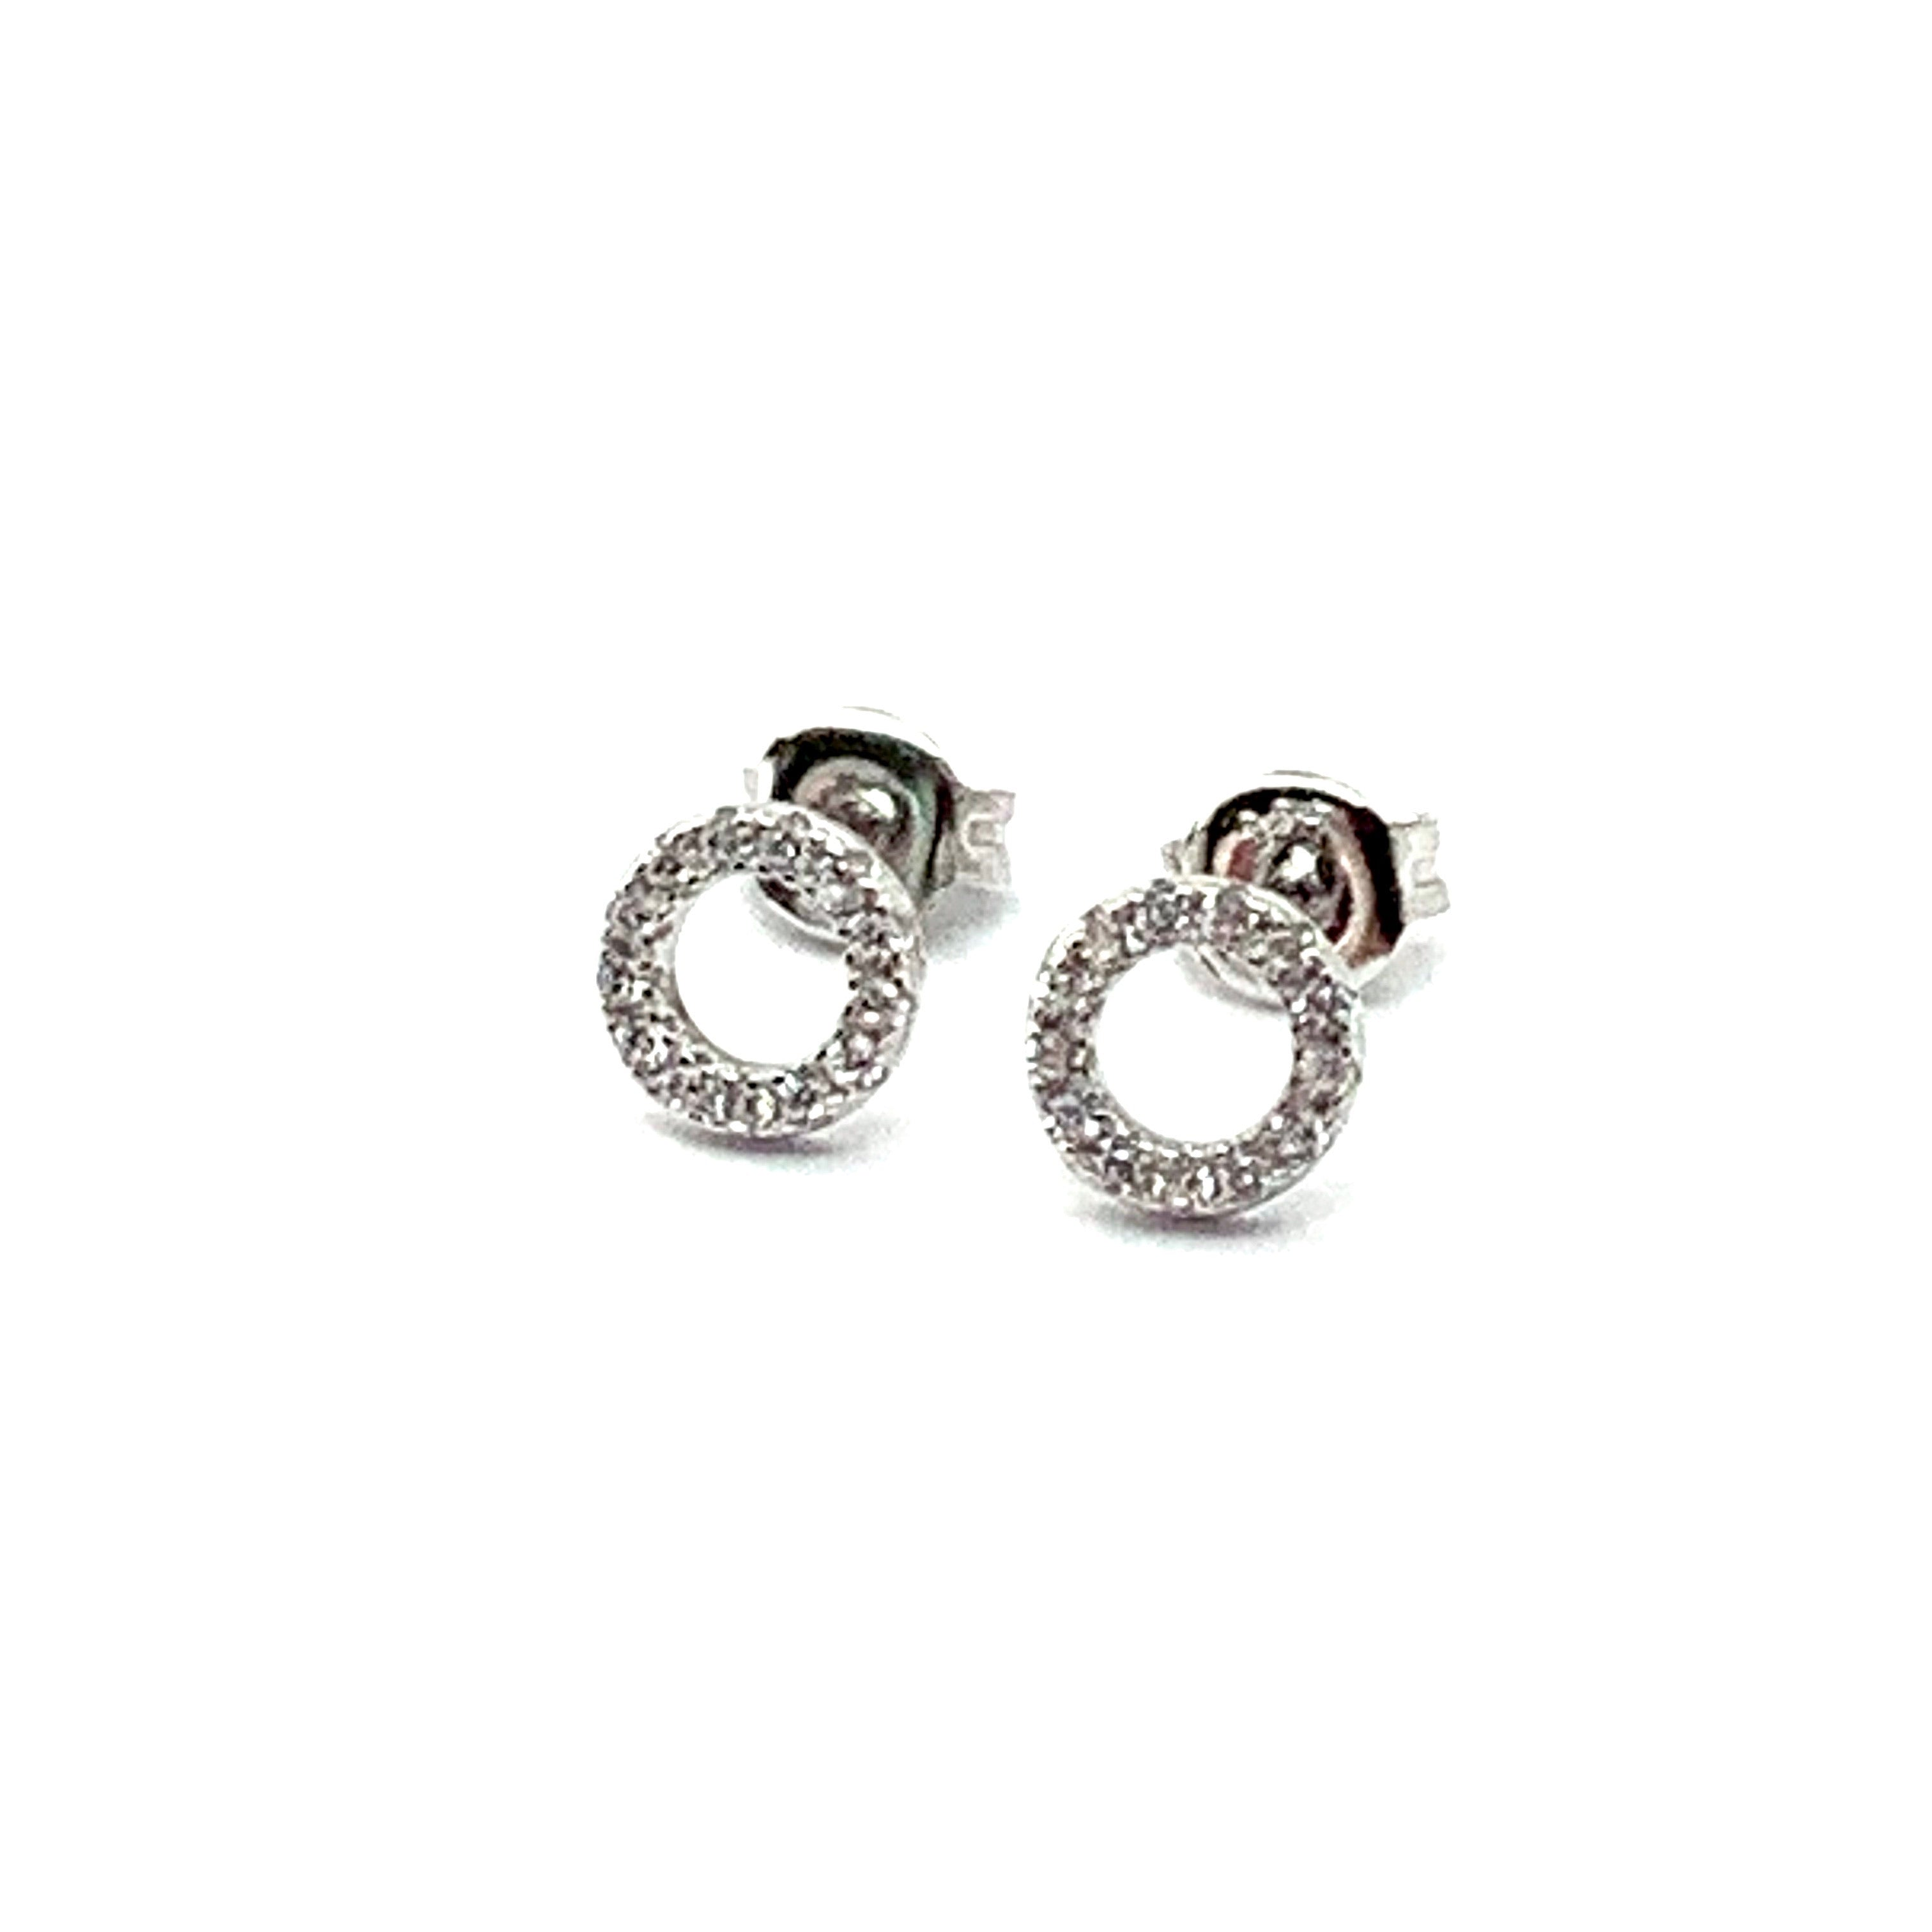 STERLING SILVER & CUBIC CIRCLE EARRINGS